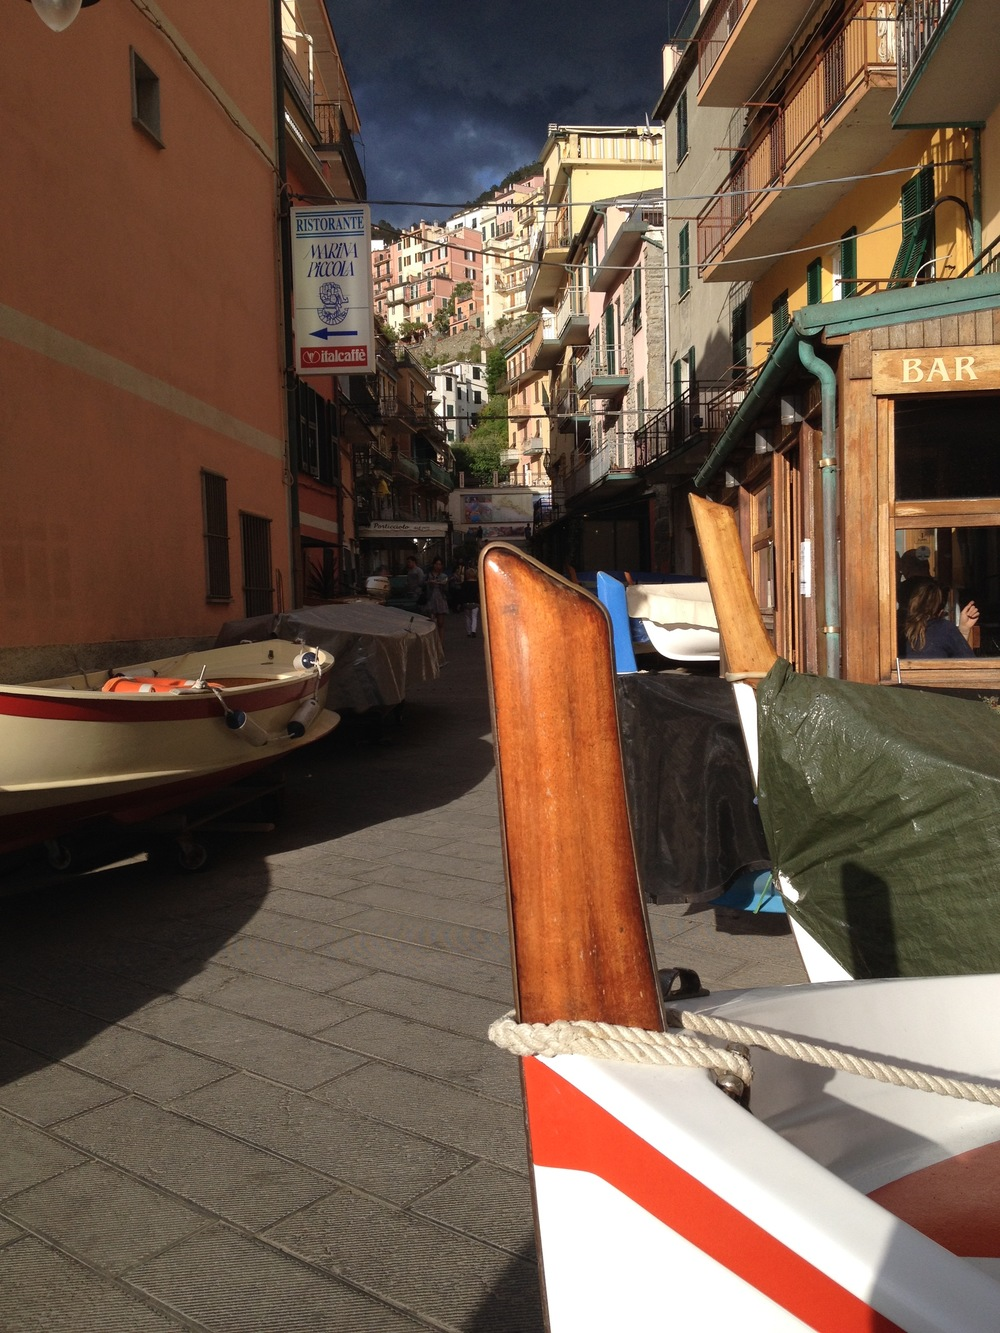 With a storm approaching, the fisherman have hauled their boats up to the pedestrian-only main street in the village of Manarola for safe keeping.